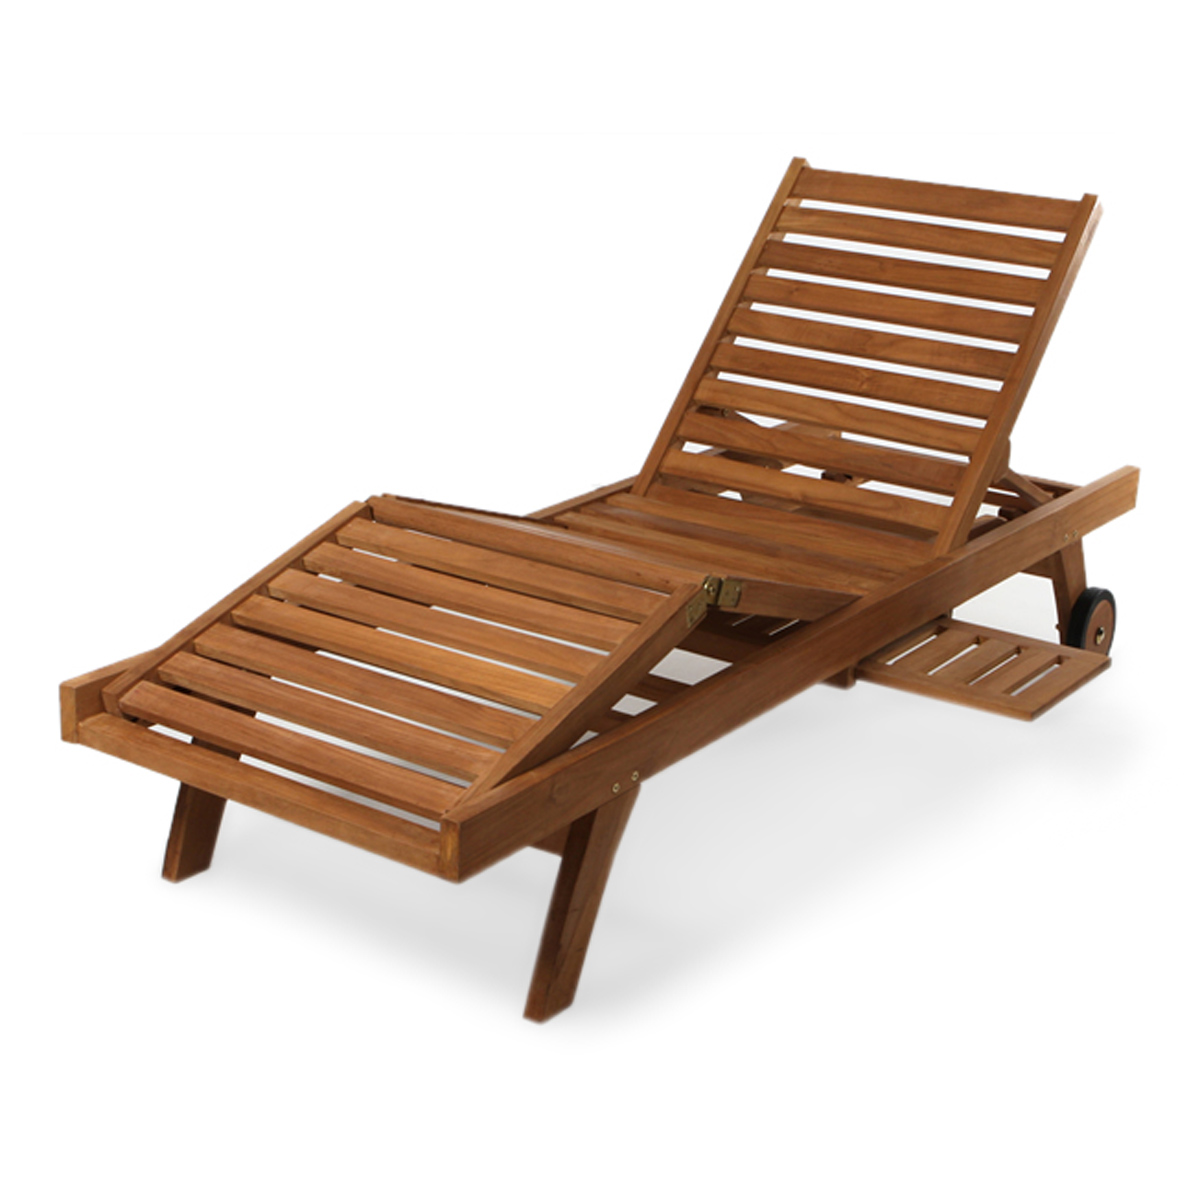 Teak Chaise Lounge Chairs Teak Furniture And Outdoor Teakwood Patio Canadian Furniture